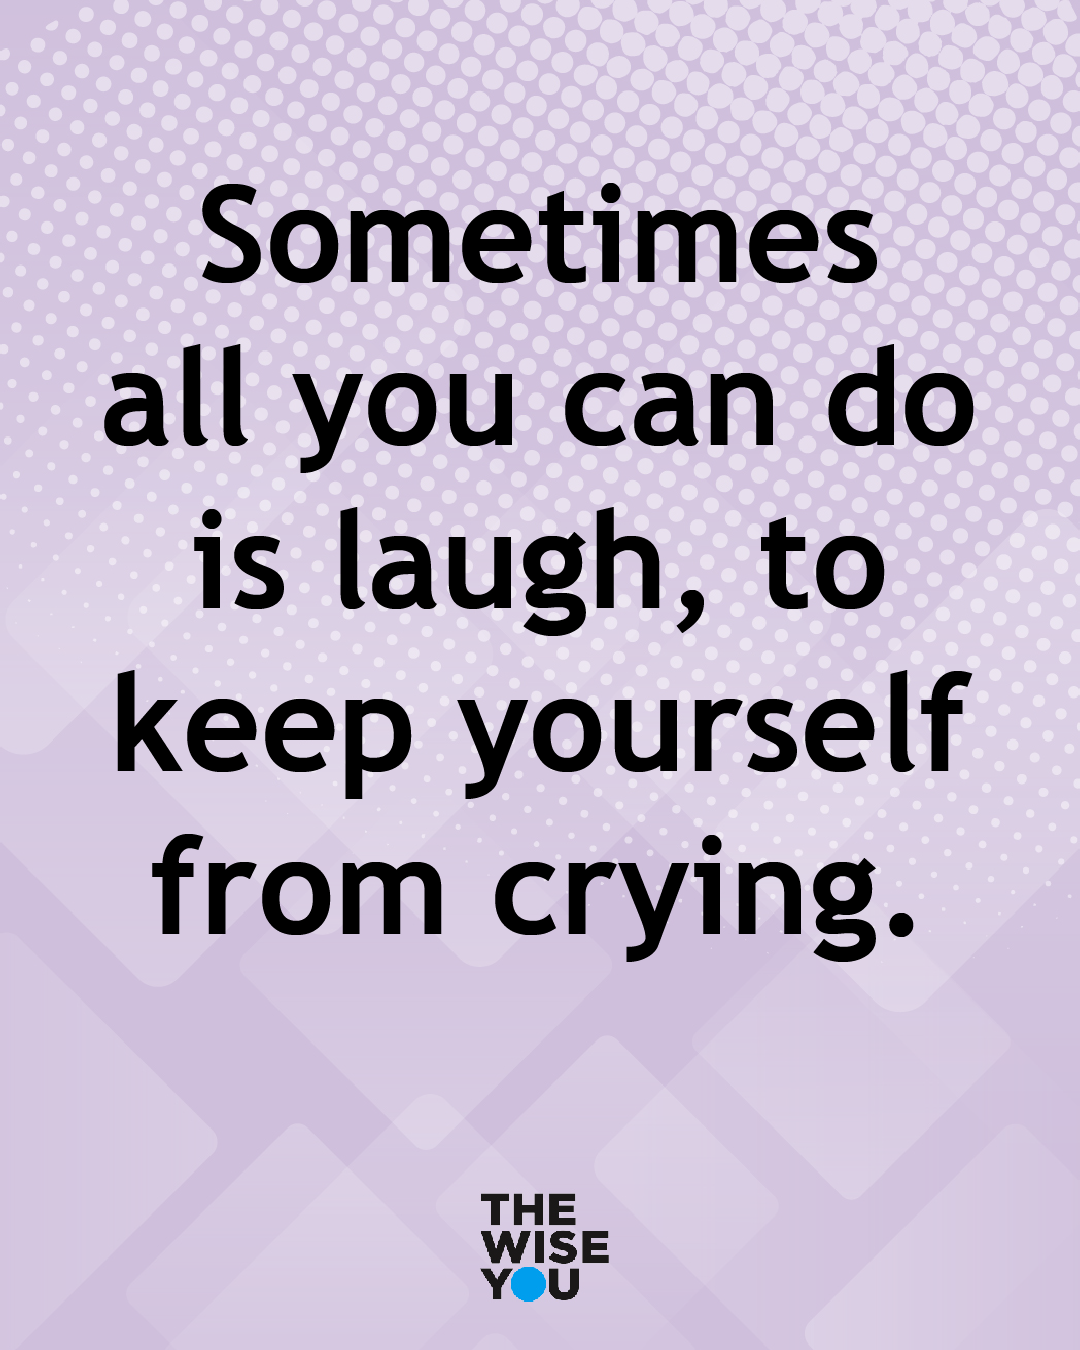 Sometimes All You Can Do Is Laugh To Keep Yourself From Crying Inspirational Quotes Encouragement Inspirational Quotes For Kids Work Quotes Inspirational